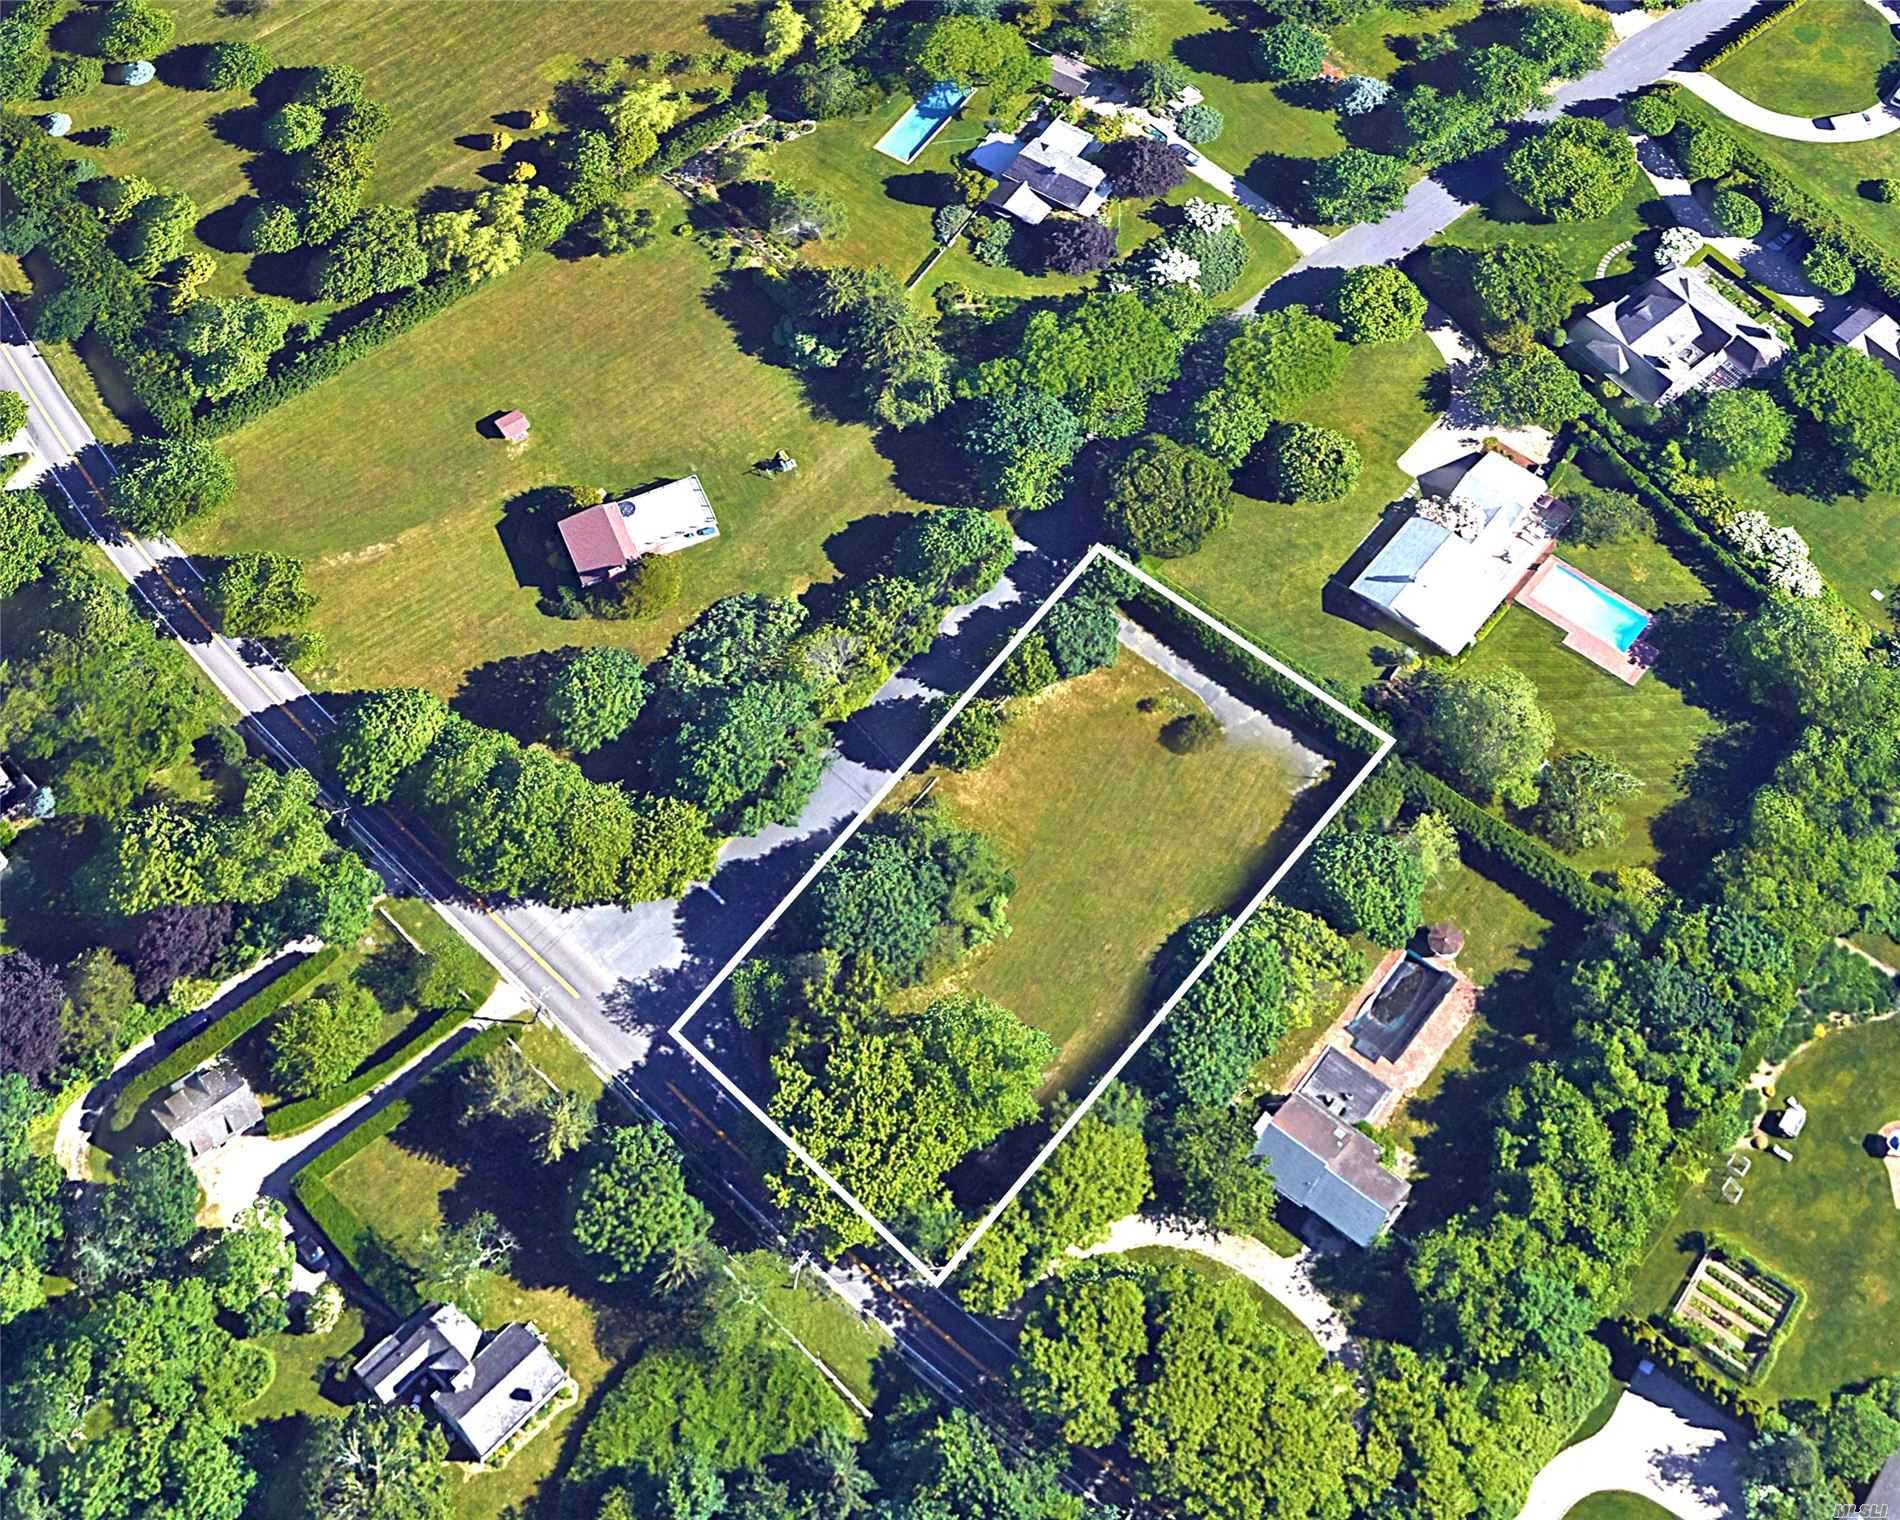 Water Mill Residential Land - Prime South Of The Highway Location Close To Bridgehampton. This 0.59 Acre Corner Lot Offers An Outstanding Opportunity To Create Your Own Hamptons Retreat. Existing House On Property Likely A Tear-Down. Grandfathered Under R-40 Zoning Dimensions For A Greater Building Envelope. Reduced For Quick Sale By Motivated Seller.